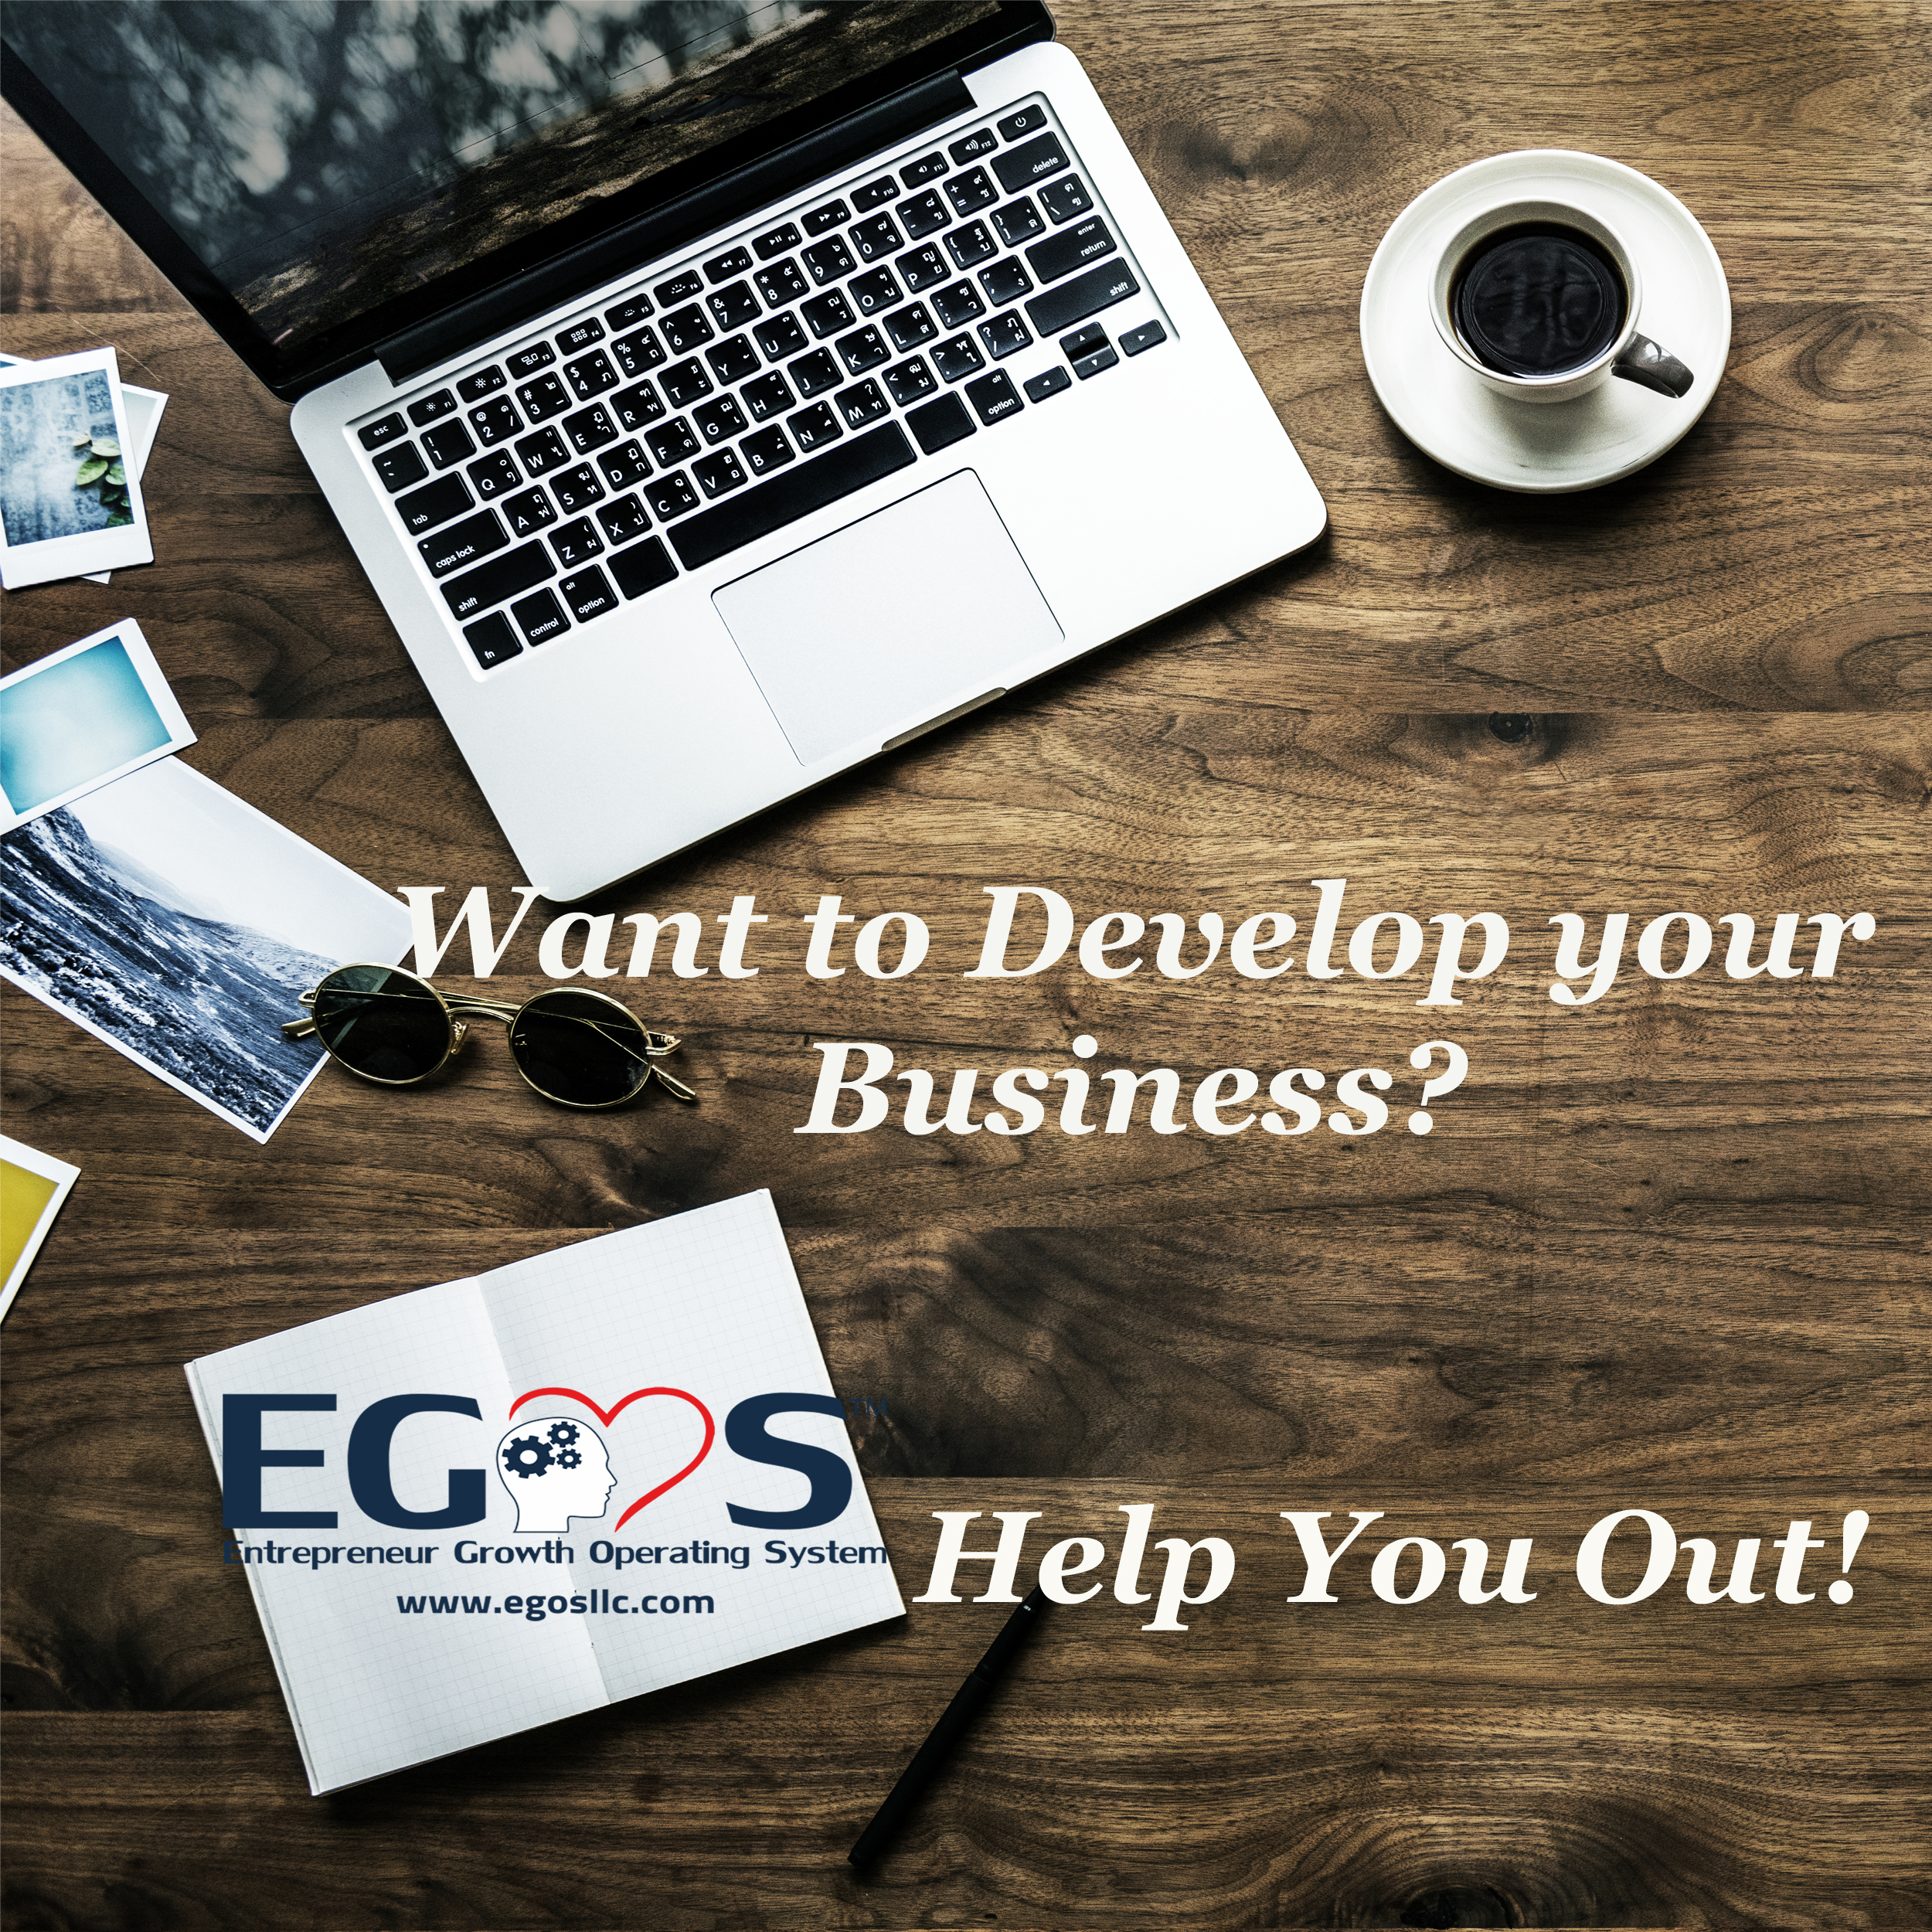 Want to develop your business - Business Coach - Egos